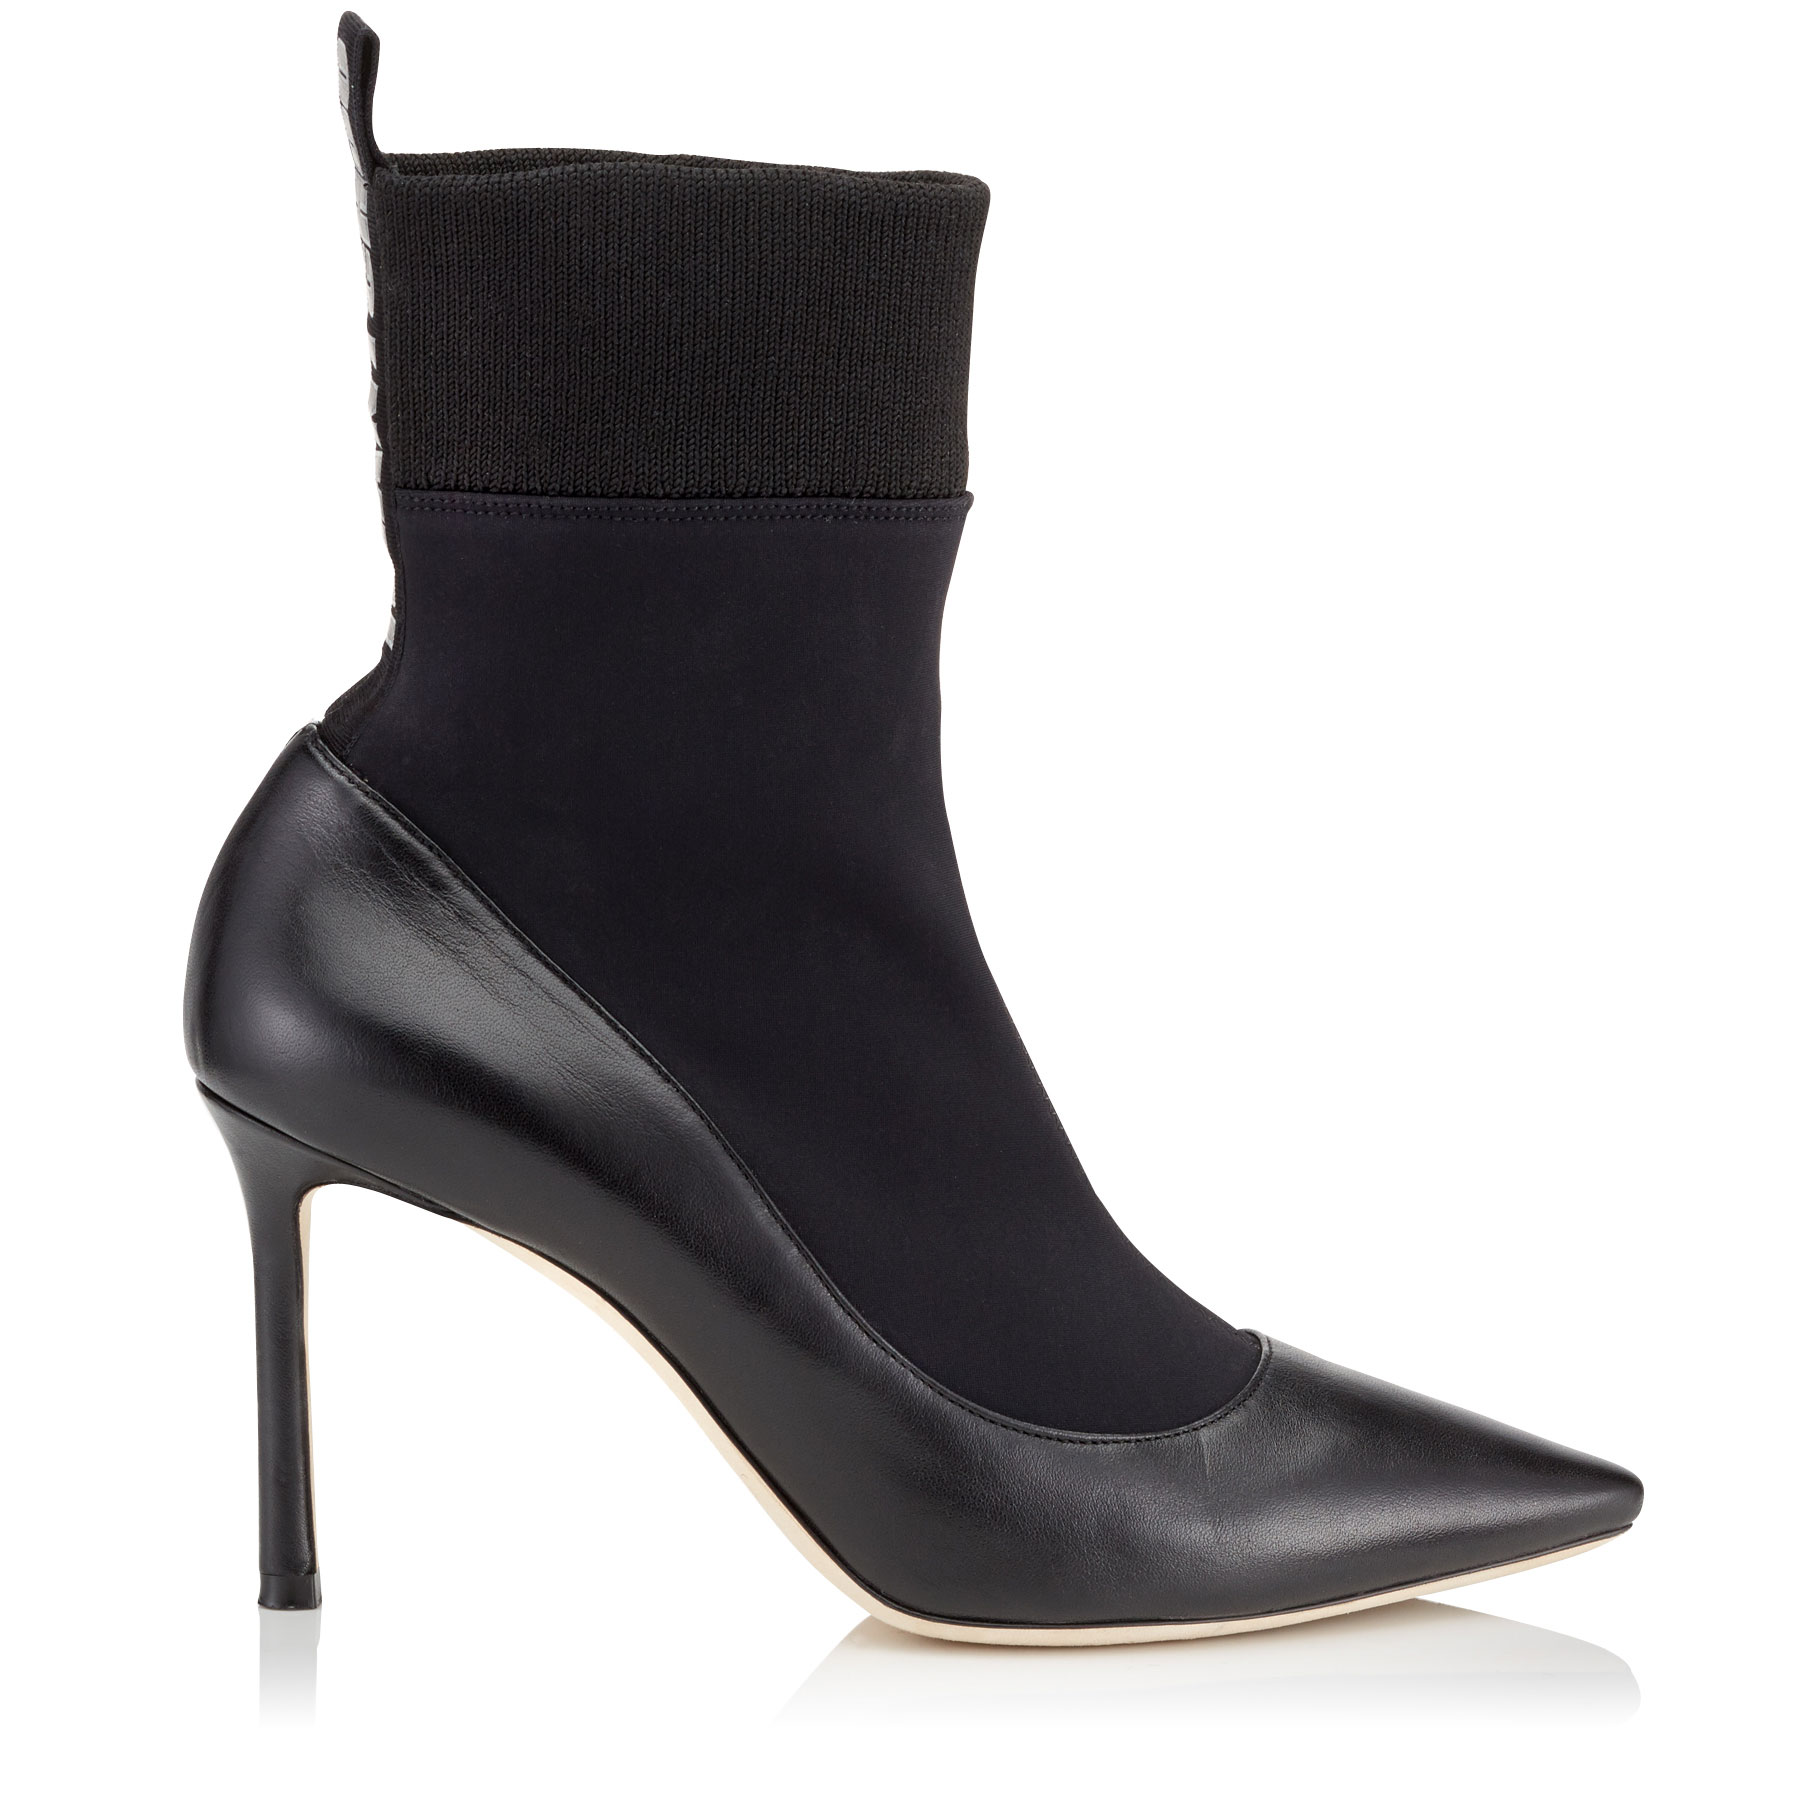 BRANDON 85 Black Nappa Leather and Stretch Fabric Sock Ankle Boots by Jimmy Choo